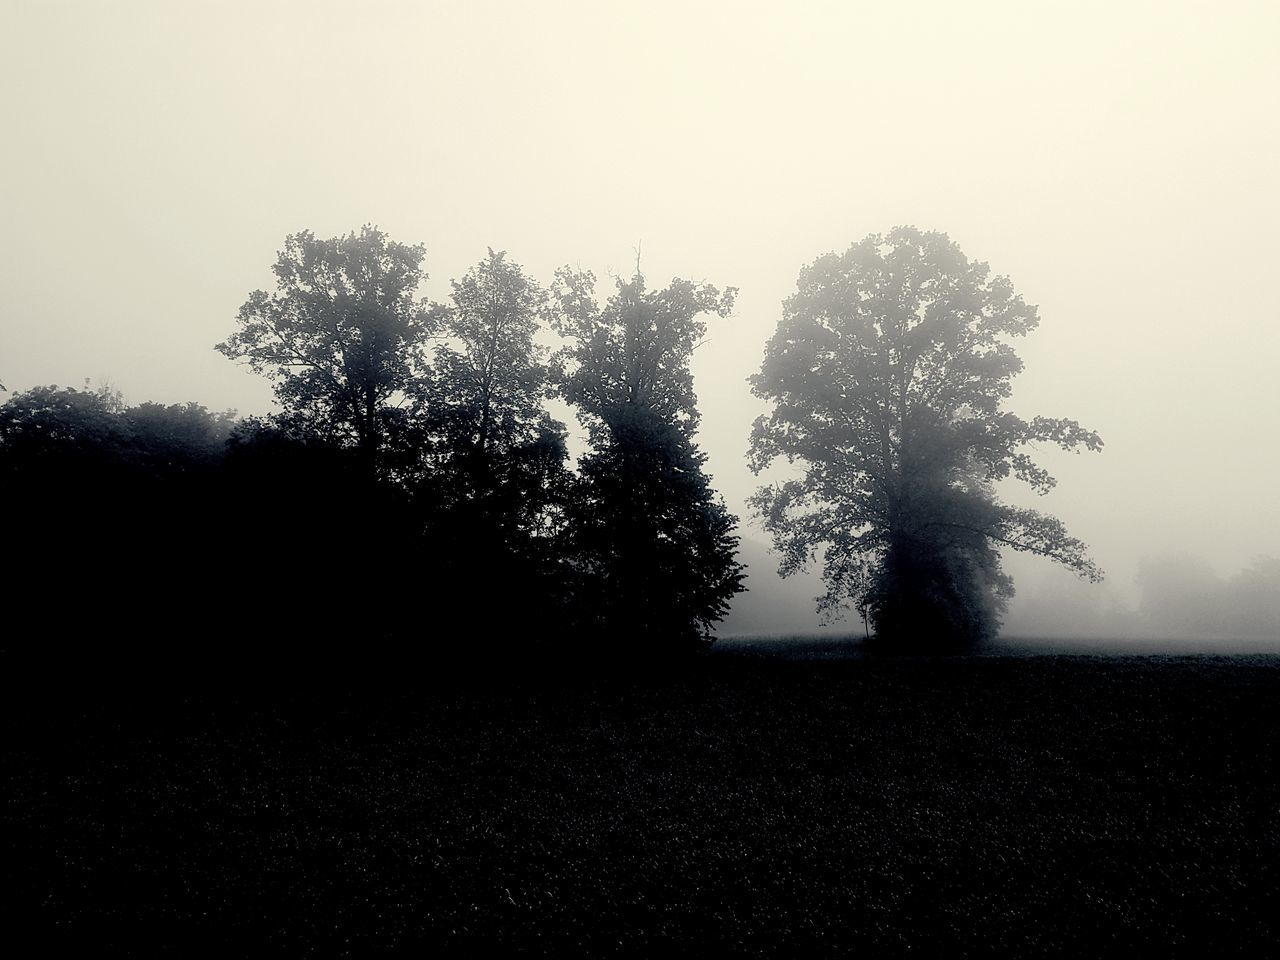 Silhouette Tree No People Nature Outdoors Beauty In Nature Freshness Dissolving Foggy Morning Foggy Landscape EyeEm Best Shots - Nature Capture The Moment EyeEm Masterclass Neighborhood Map Outdoor Photography Black & White My Unique Style Getting Inspired EyEmNewHere Blackandwhite Eye4photography  EyeEm Best Shots Something Different The Great Outdoors - 2017 EyeEm Awards EyeEm Gallery